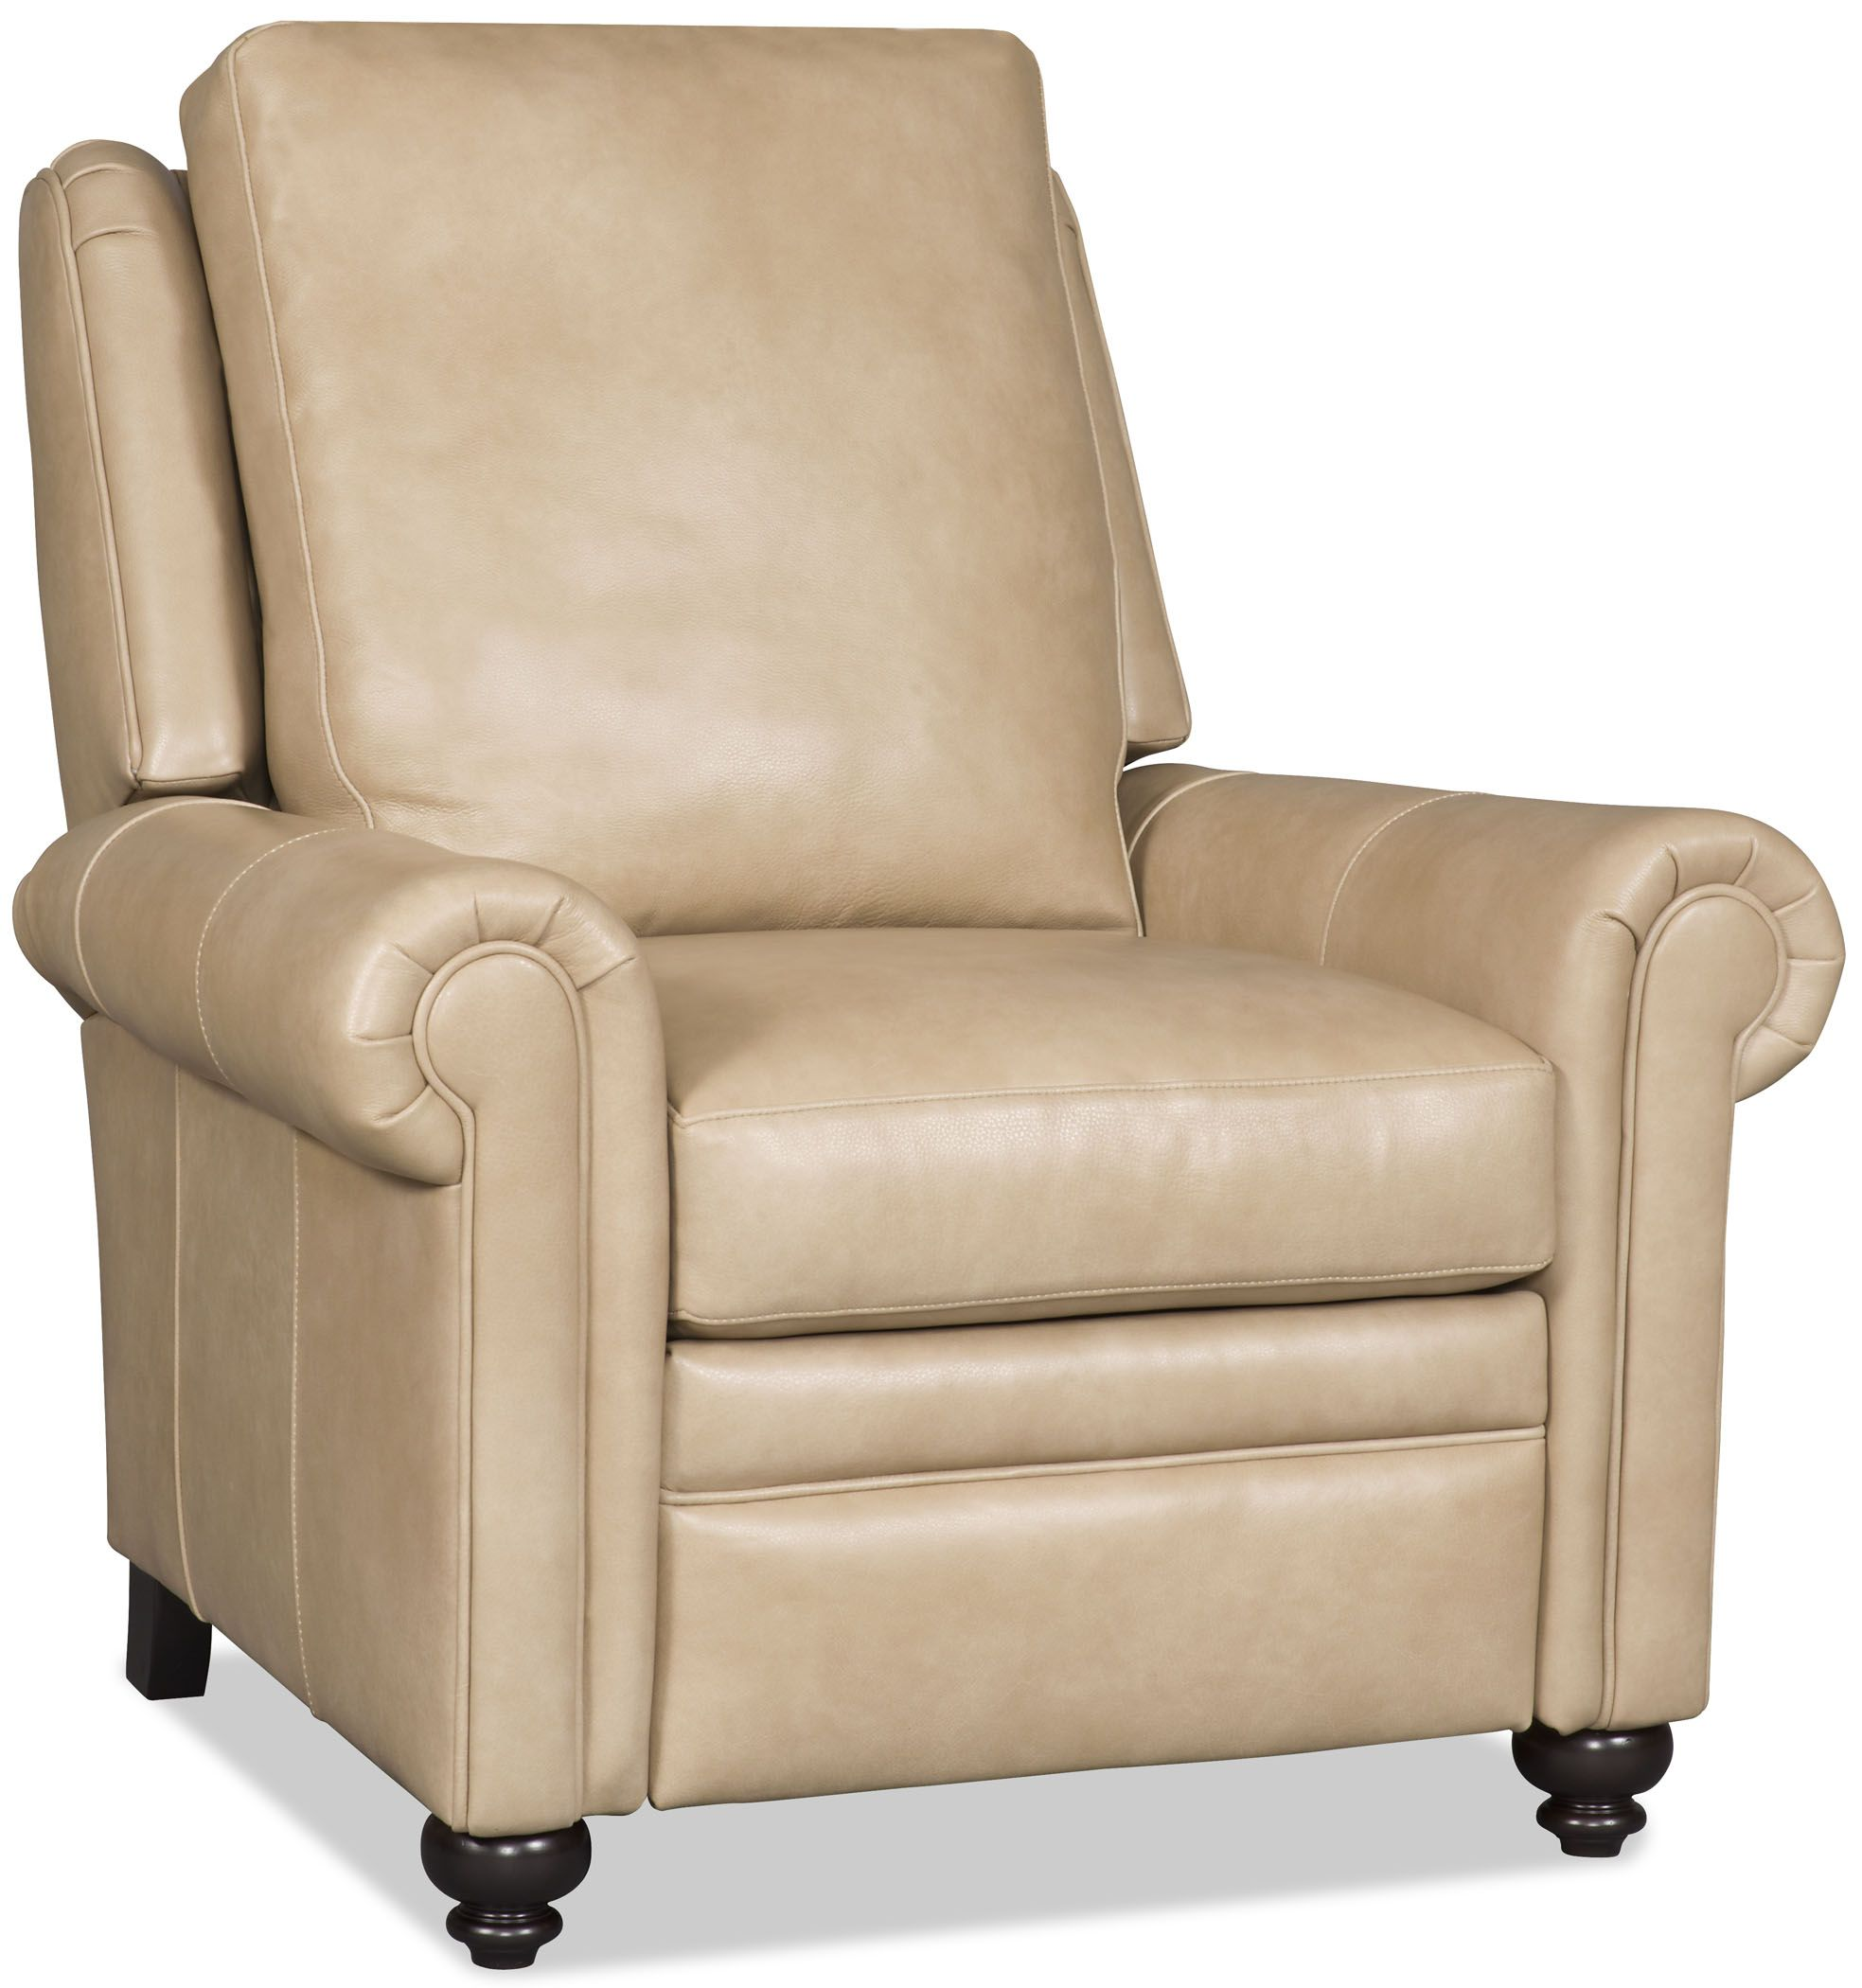 daire leather recliner available at wellingtons leather furniture rh pinterest com